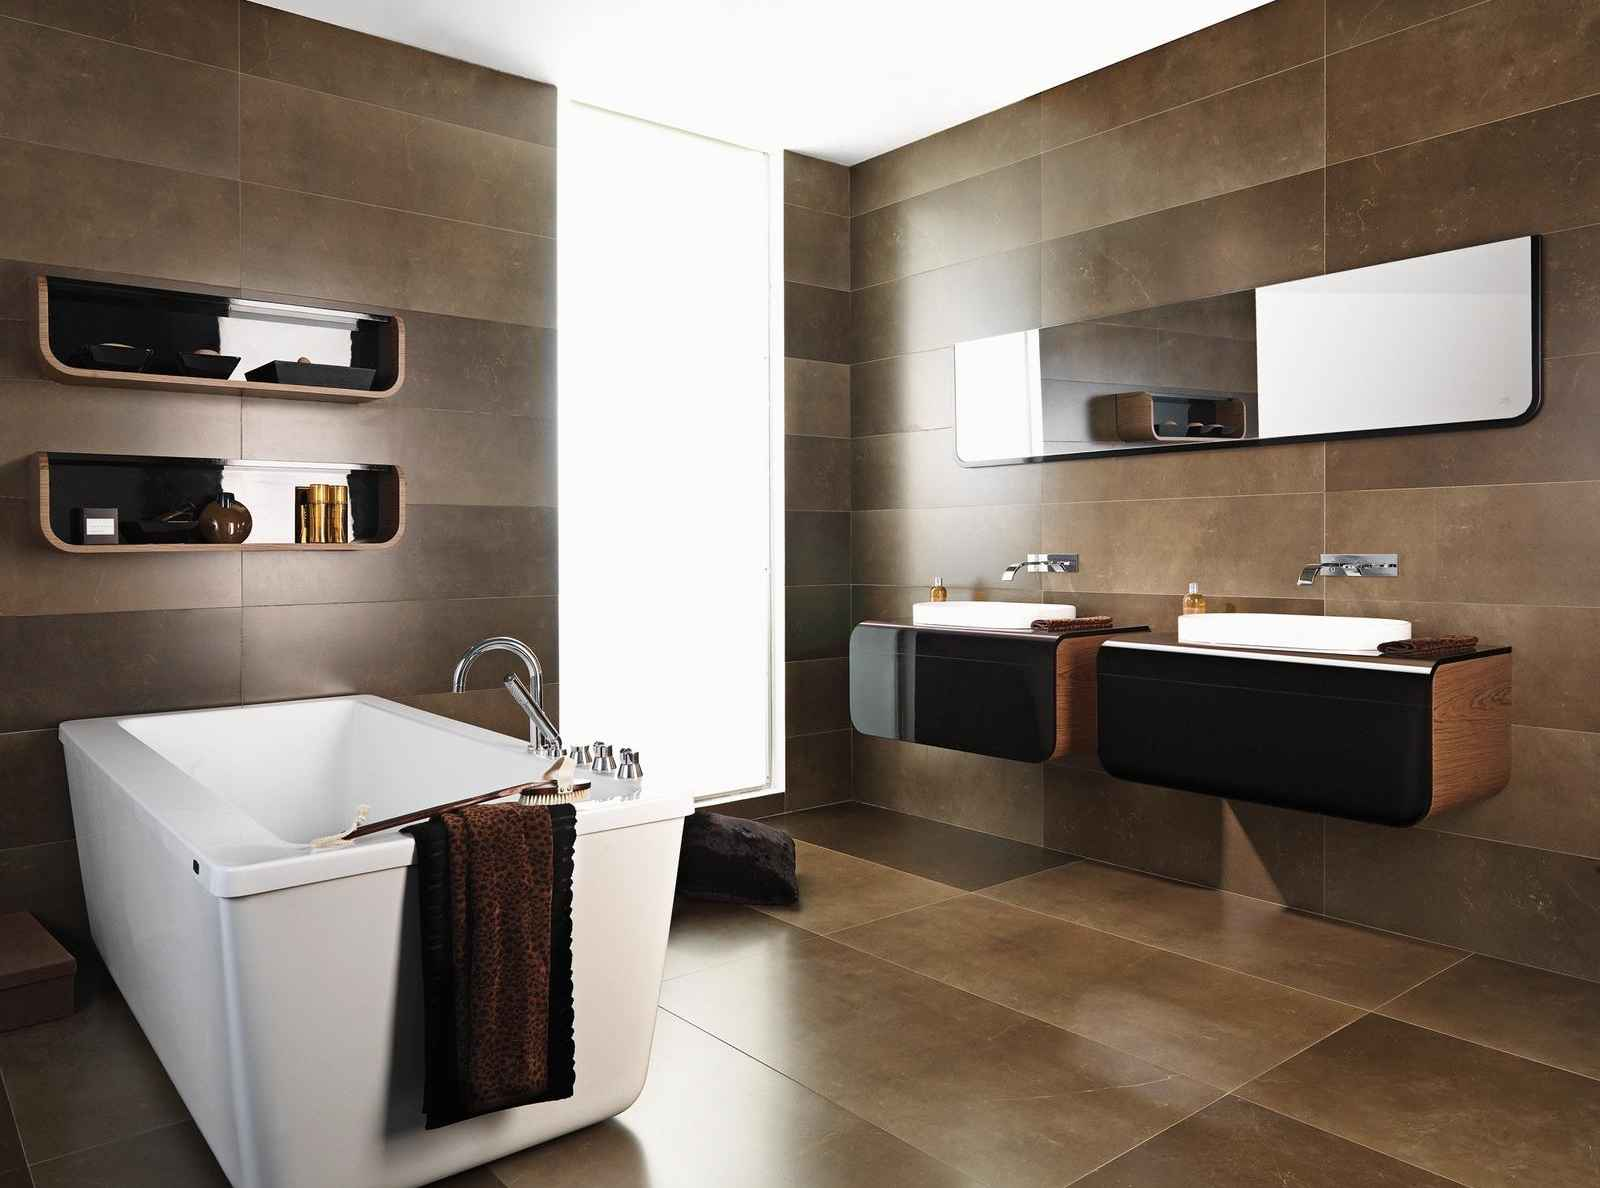 27 wonderful pictures and ideas of italian bathroom wall tiles for Couleur salle de bain moderne